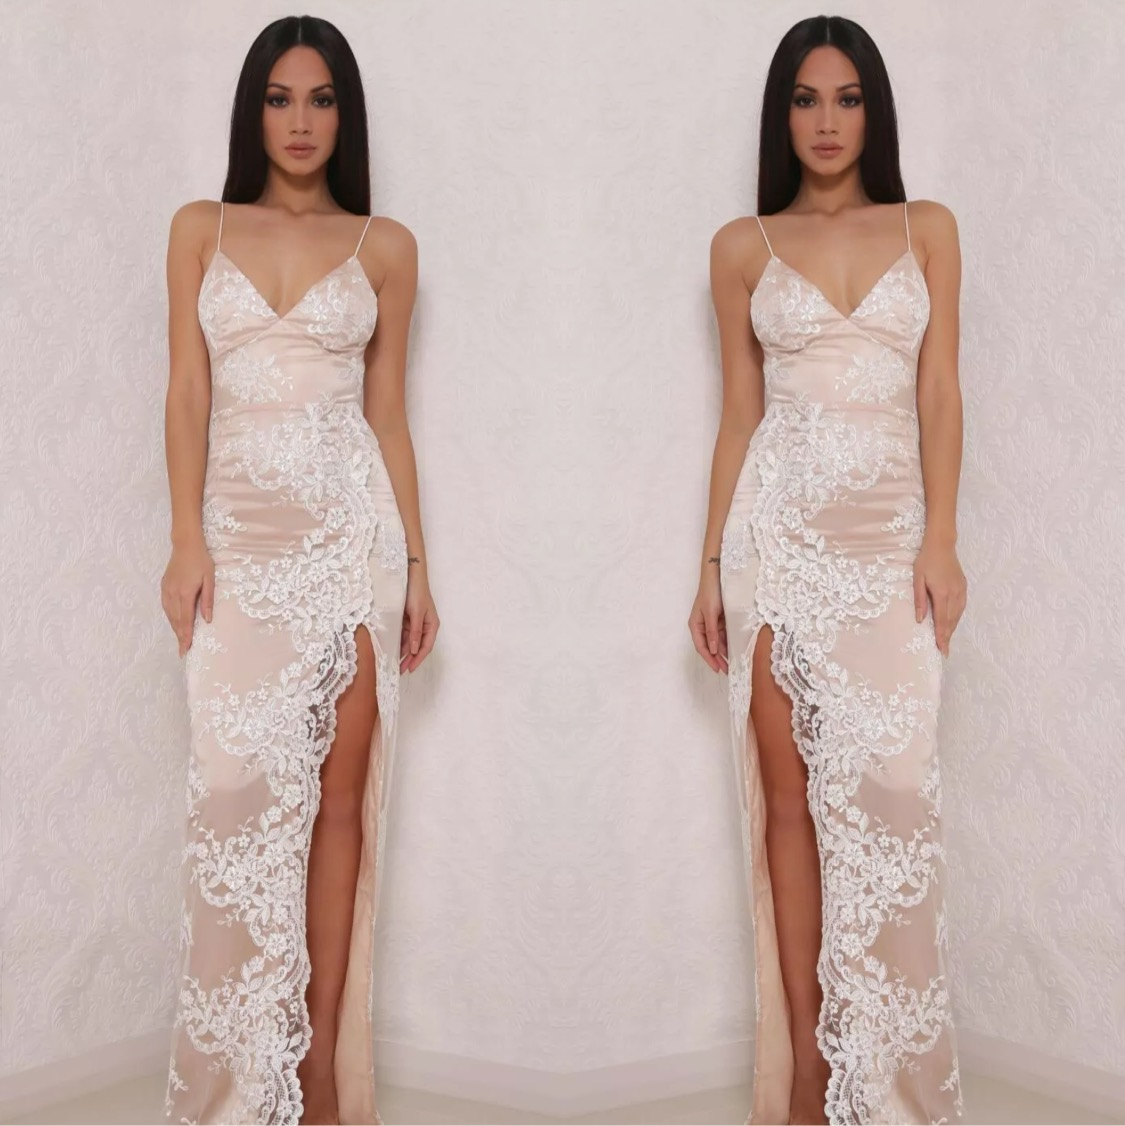 Dress & Gown Hire Perth   Affordable Designer Ball Dress